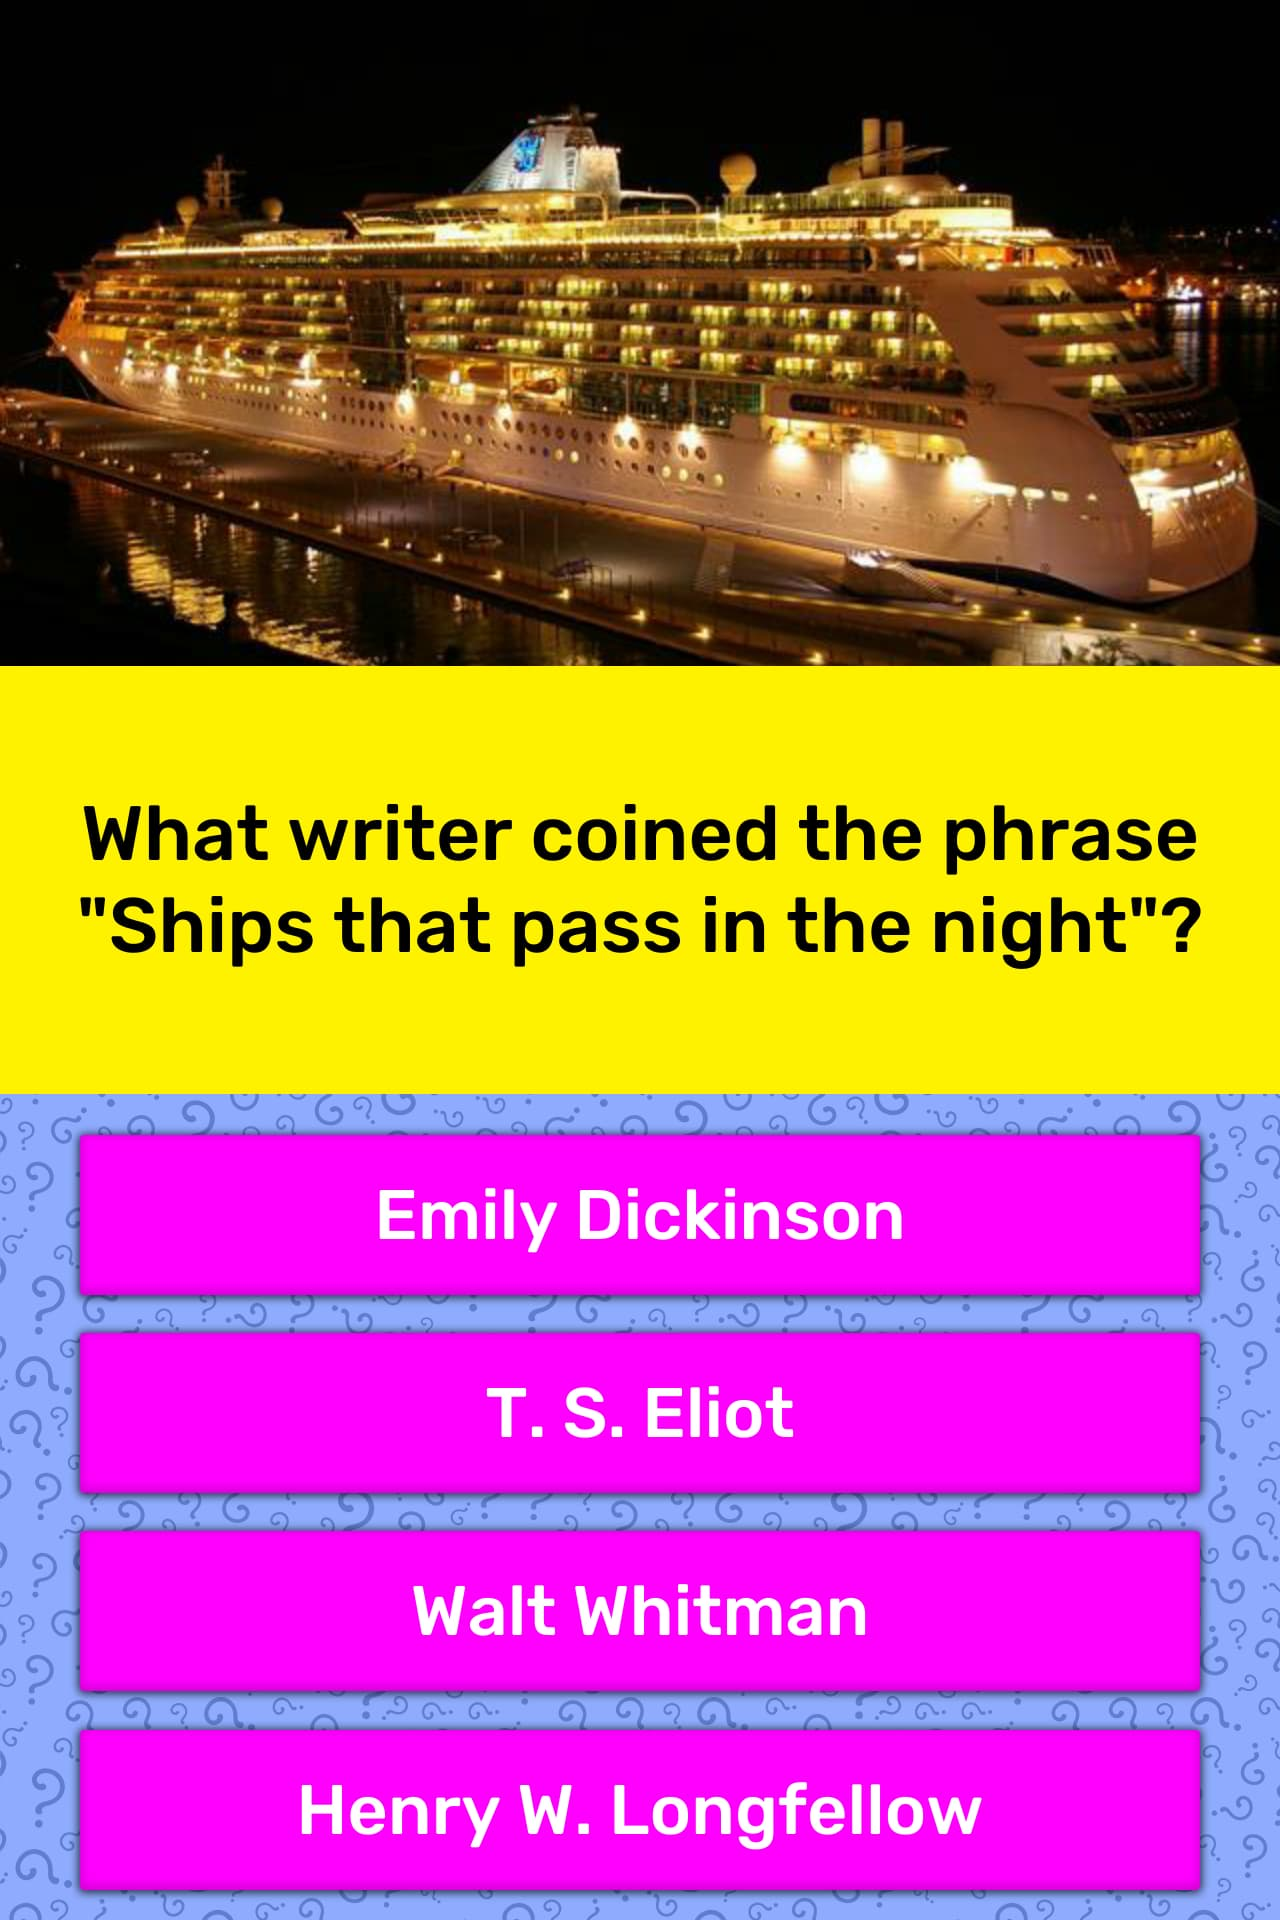 Which Writer Coined The Phrase Ships That Pass In The Night